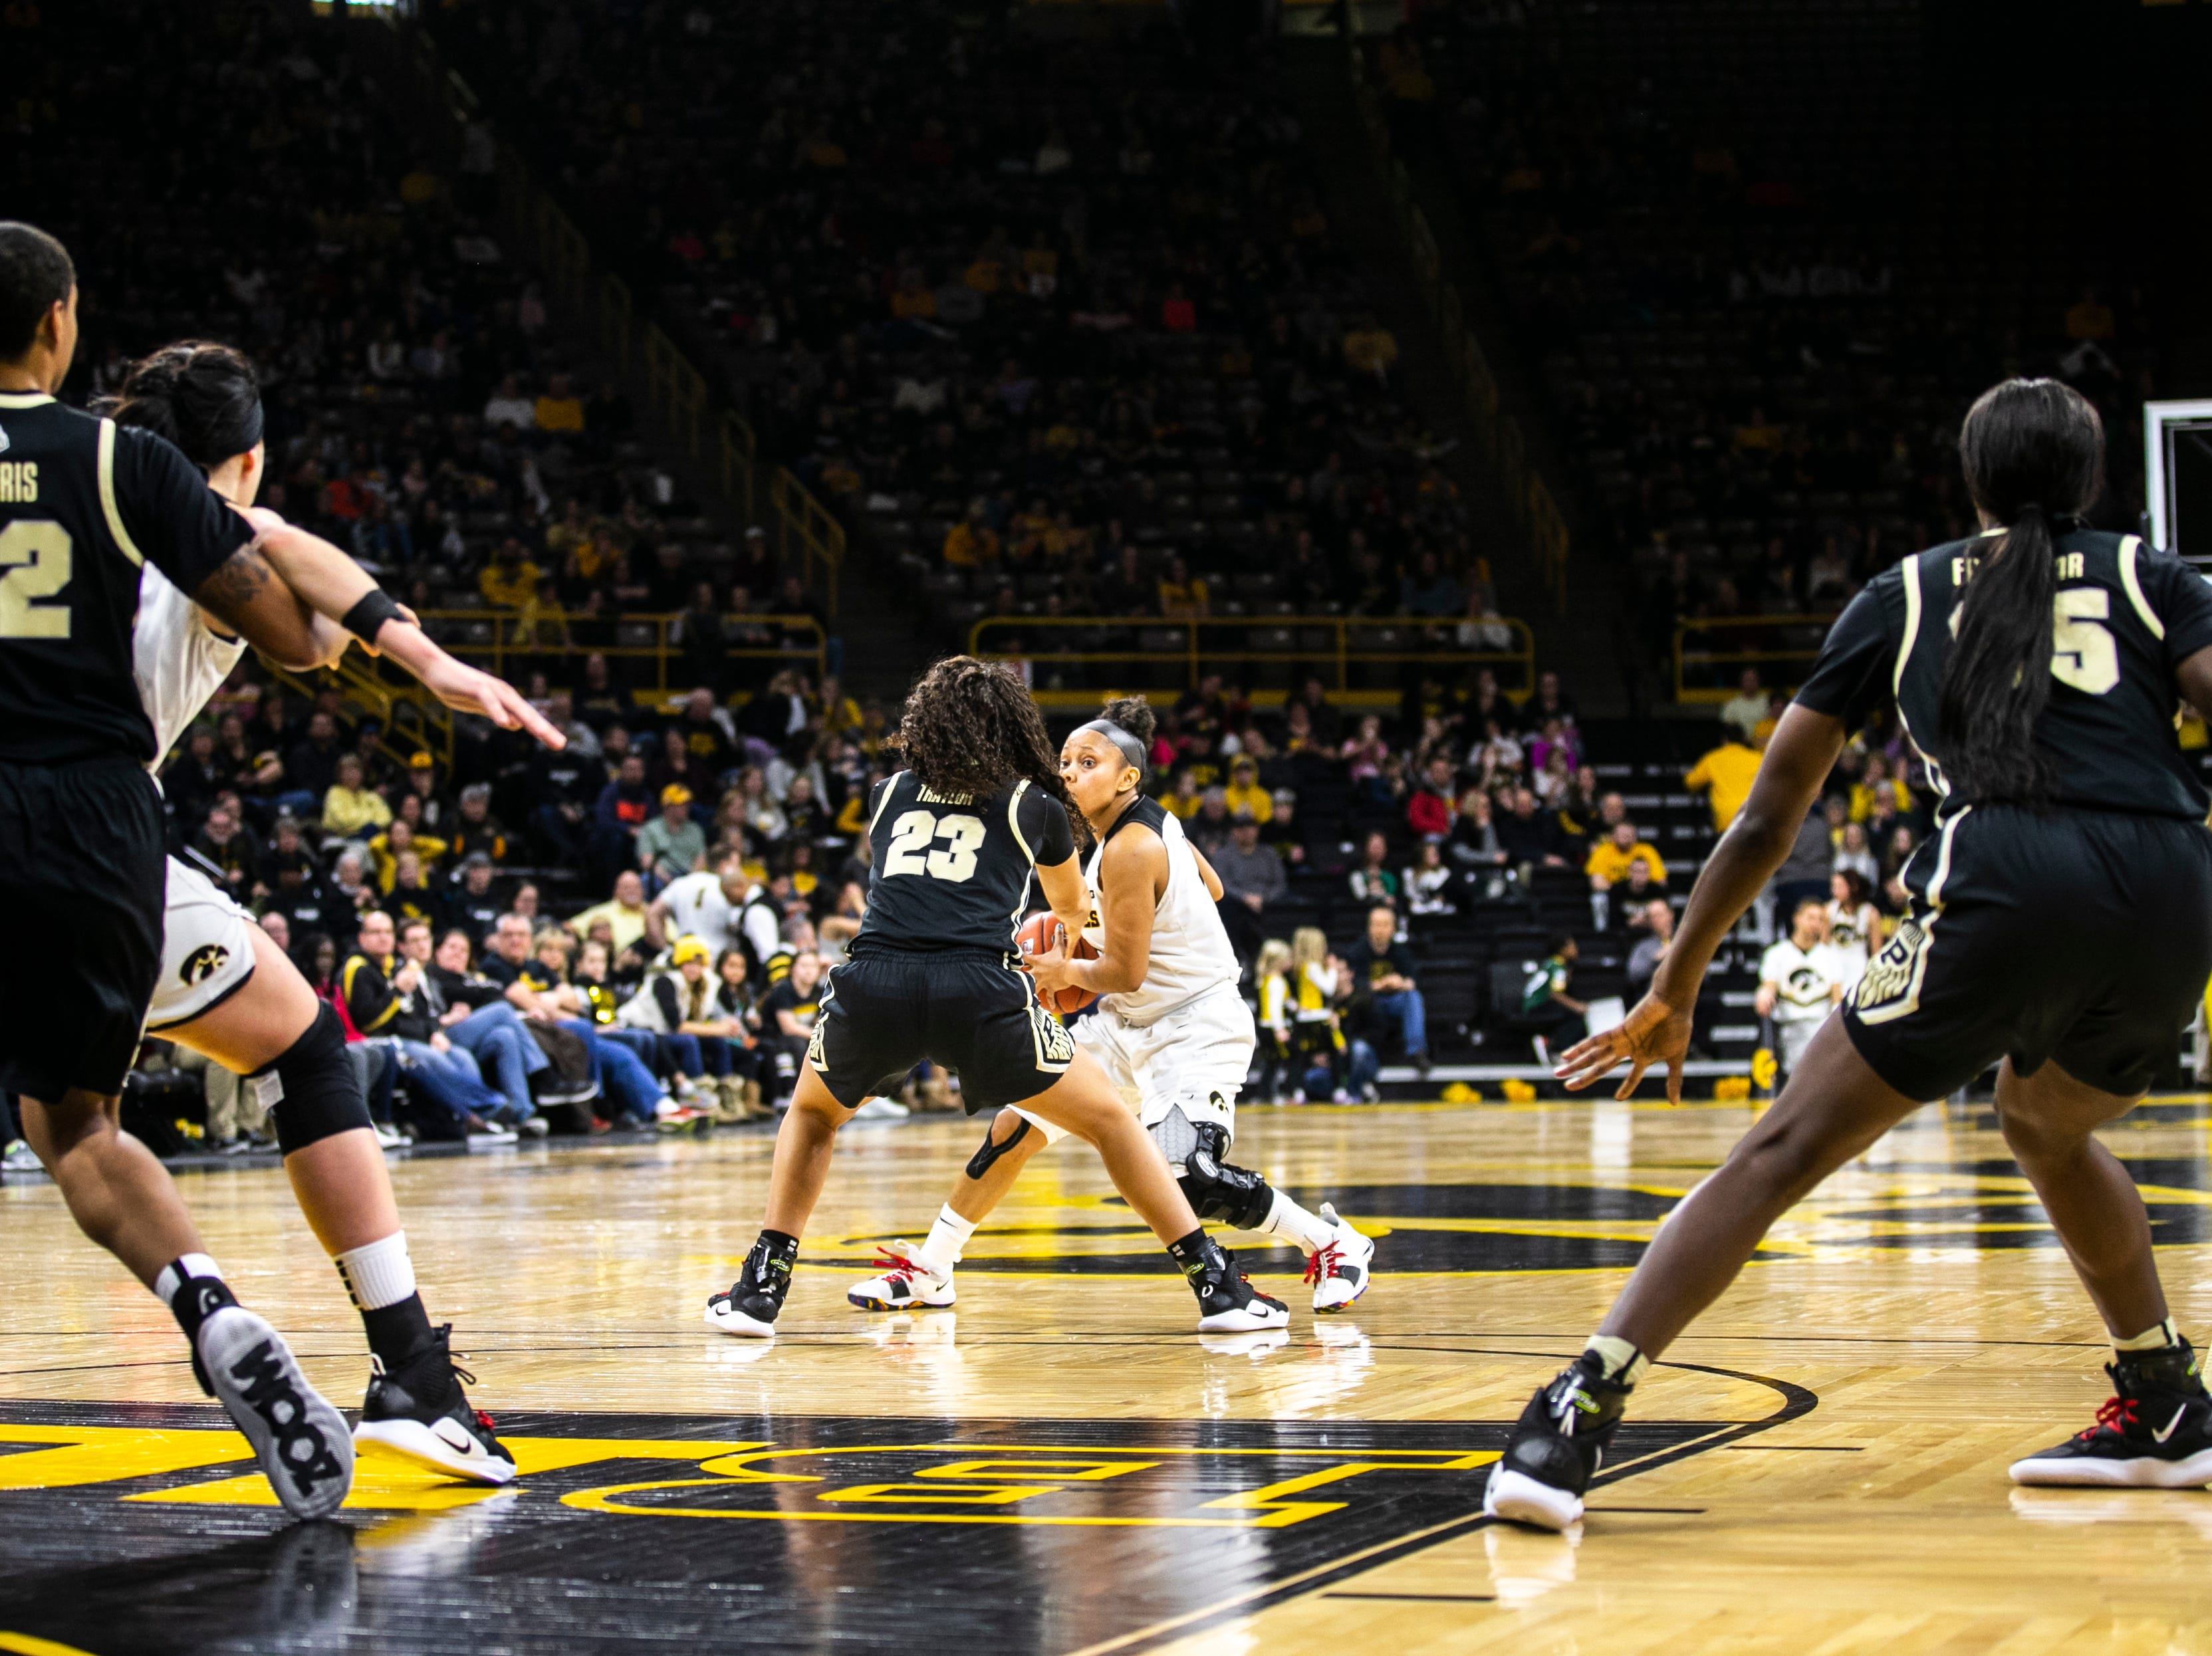 Iowa guard Tania Davis (11) looks to pass during a NCAA Big Ten Conference women's basketball game on Sunday, Jan. 27, 2019, at Carver-Hawkeye Arena in Iowa City, Iowa.